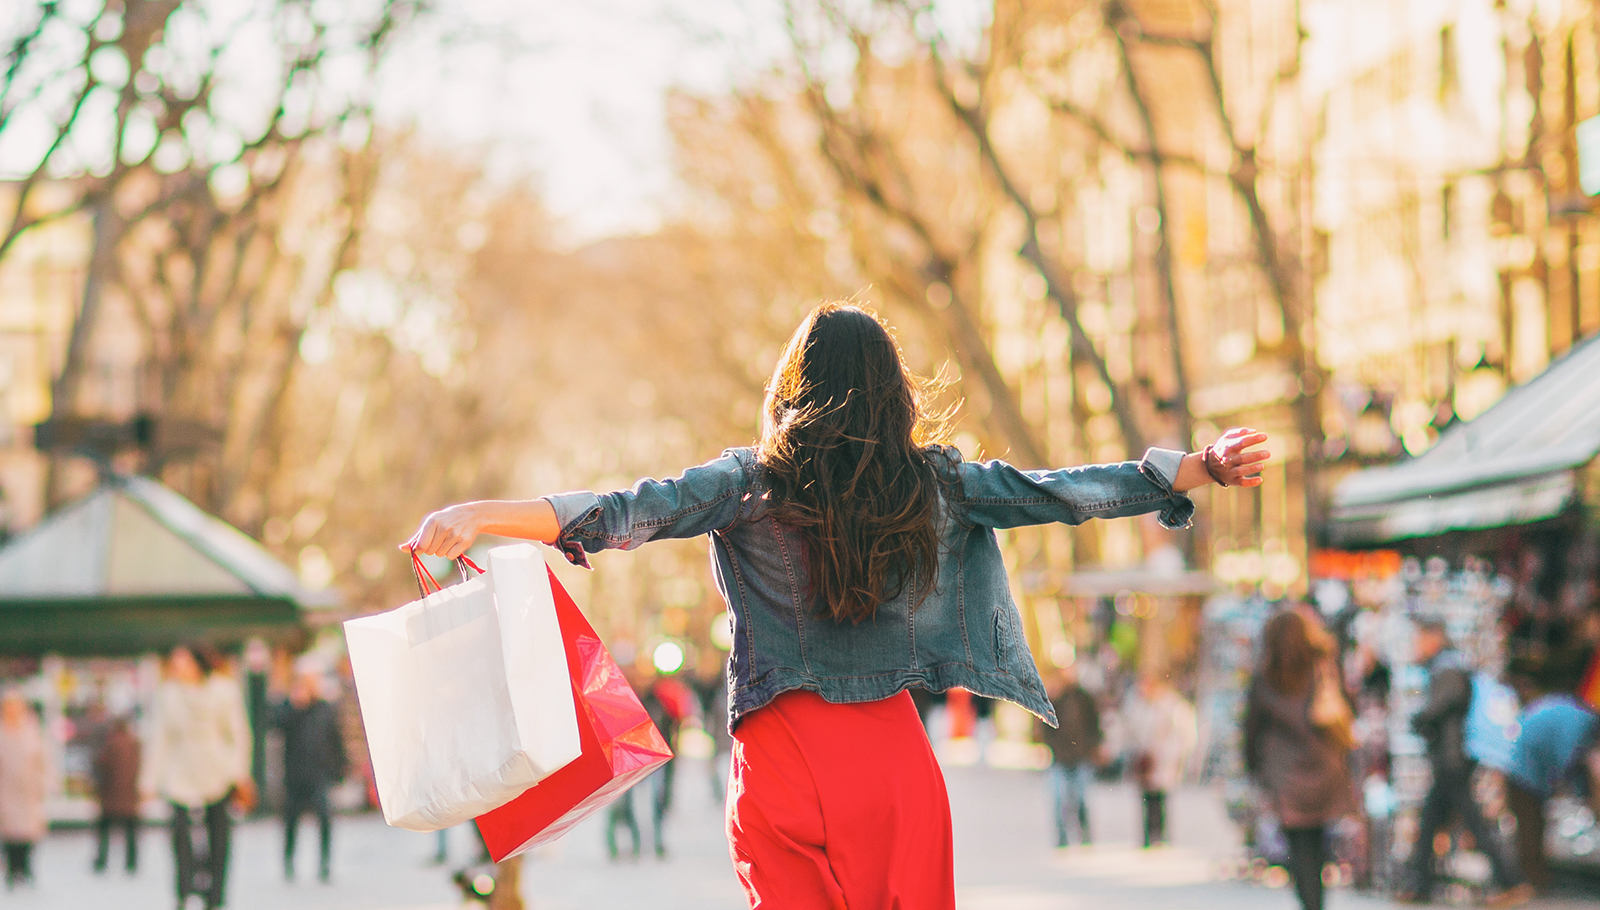 buy-now-pay-later-how-this-works-women-celebrating-shopping